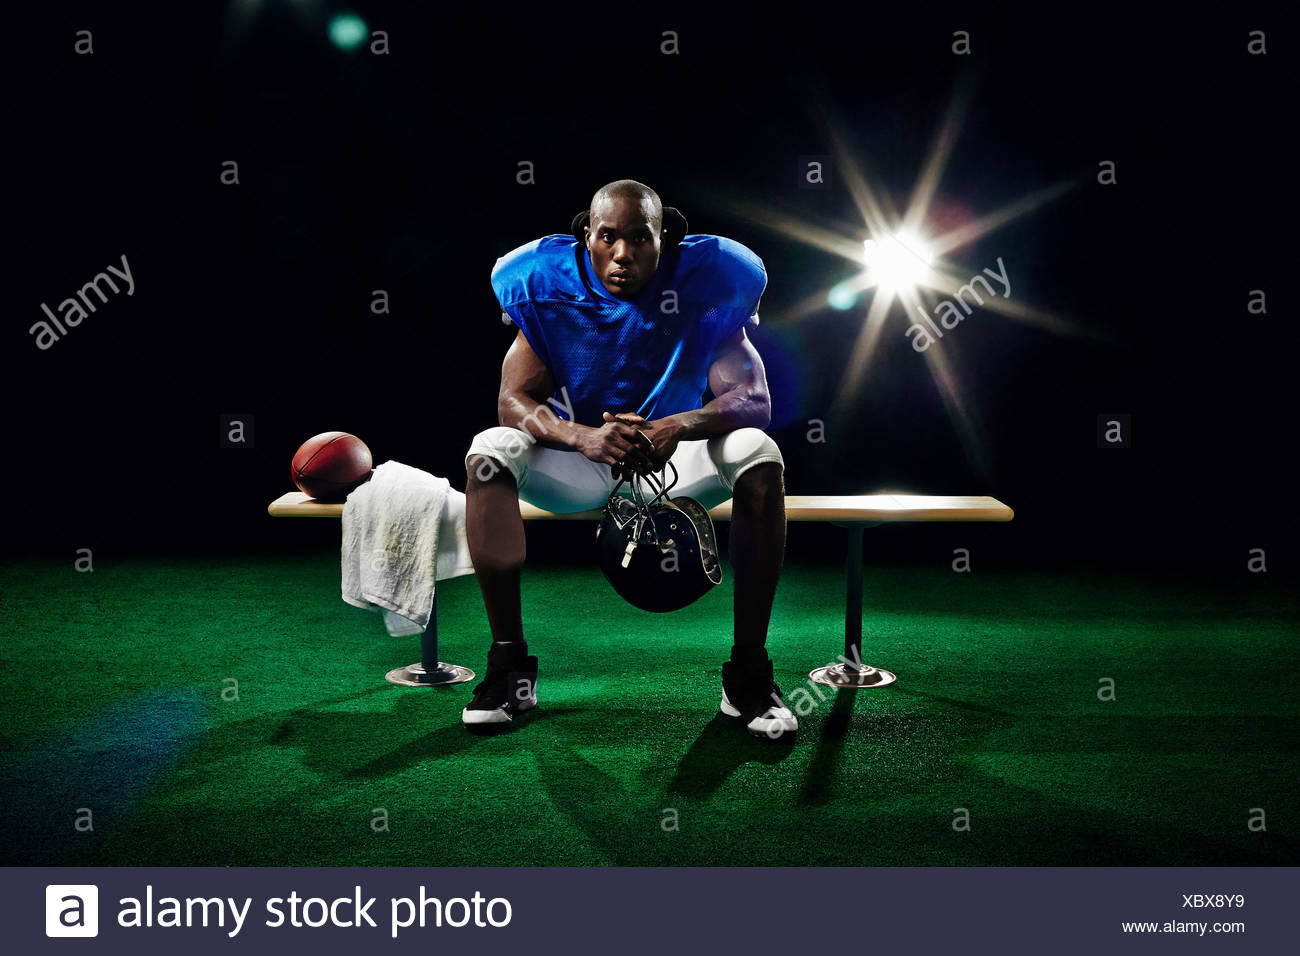 Portrait of american football player sitting on bench - Stock Image